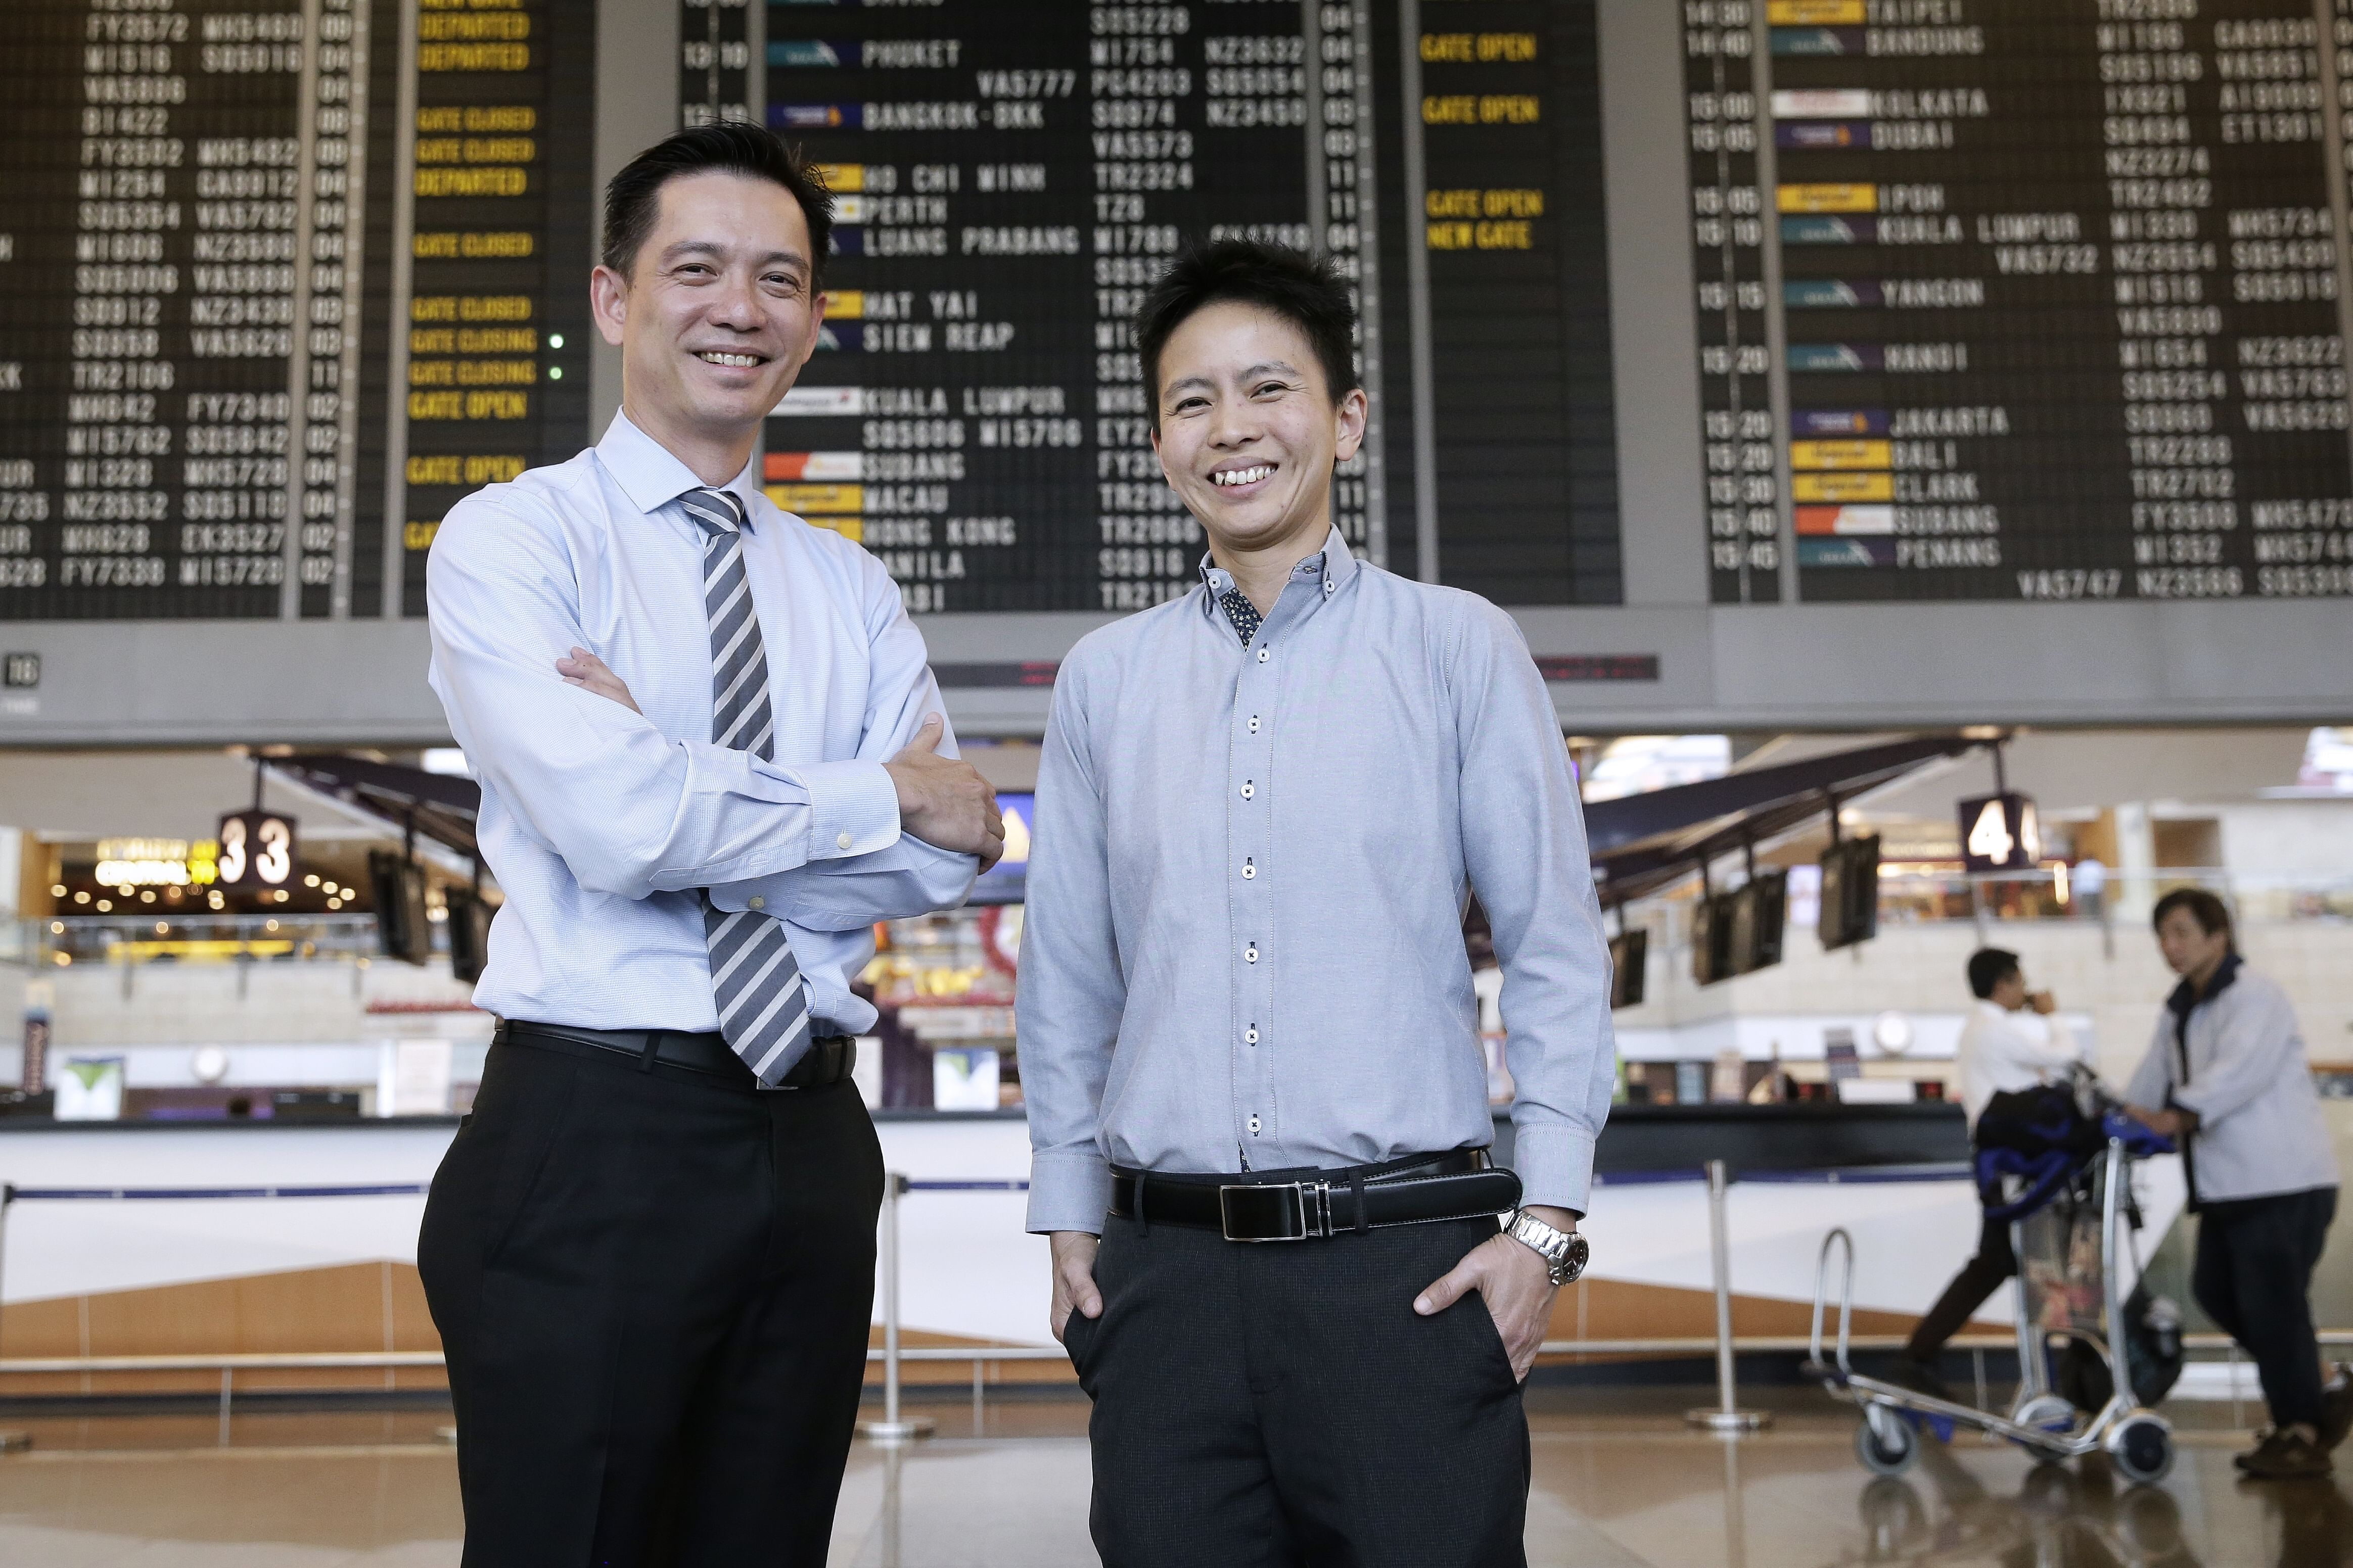 Mr Goh (left) convinced his company's HR department to grant Ms Giam (right) NS leave when she is called up, so she can return to her squadron for training without taking her annual leave.